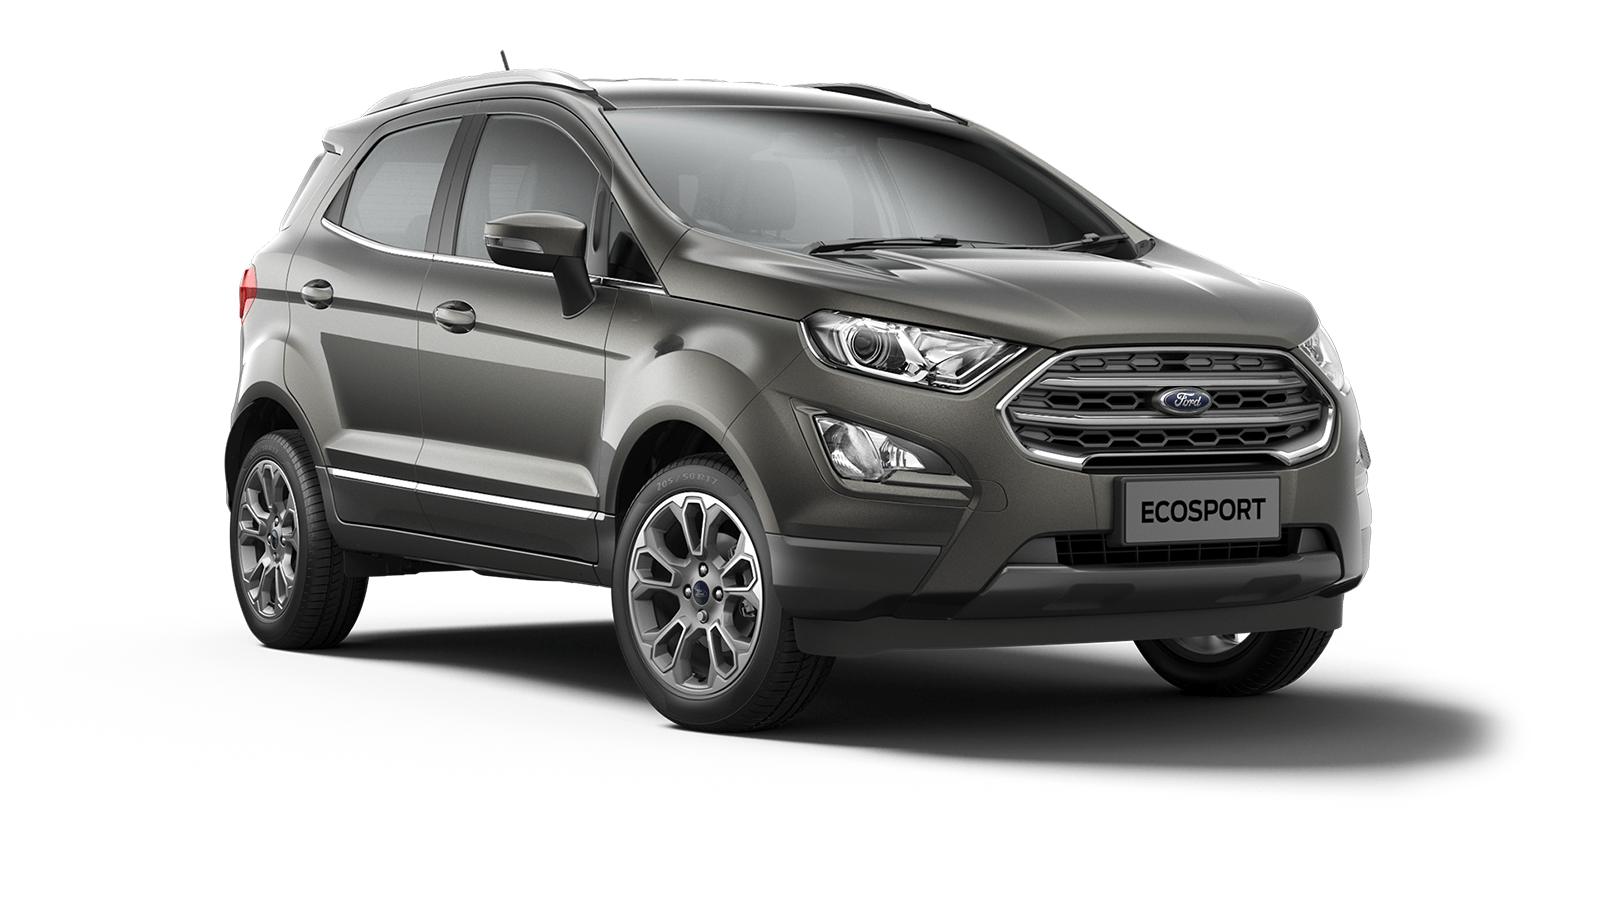 https://www.dealerinternet.co.uk/images/B515%20ECOSPORT/2019/5%20Door/Titanium/MAGNETIC.png